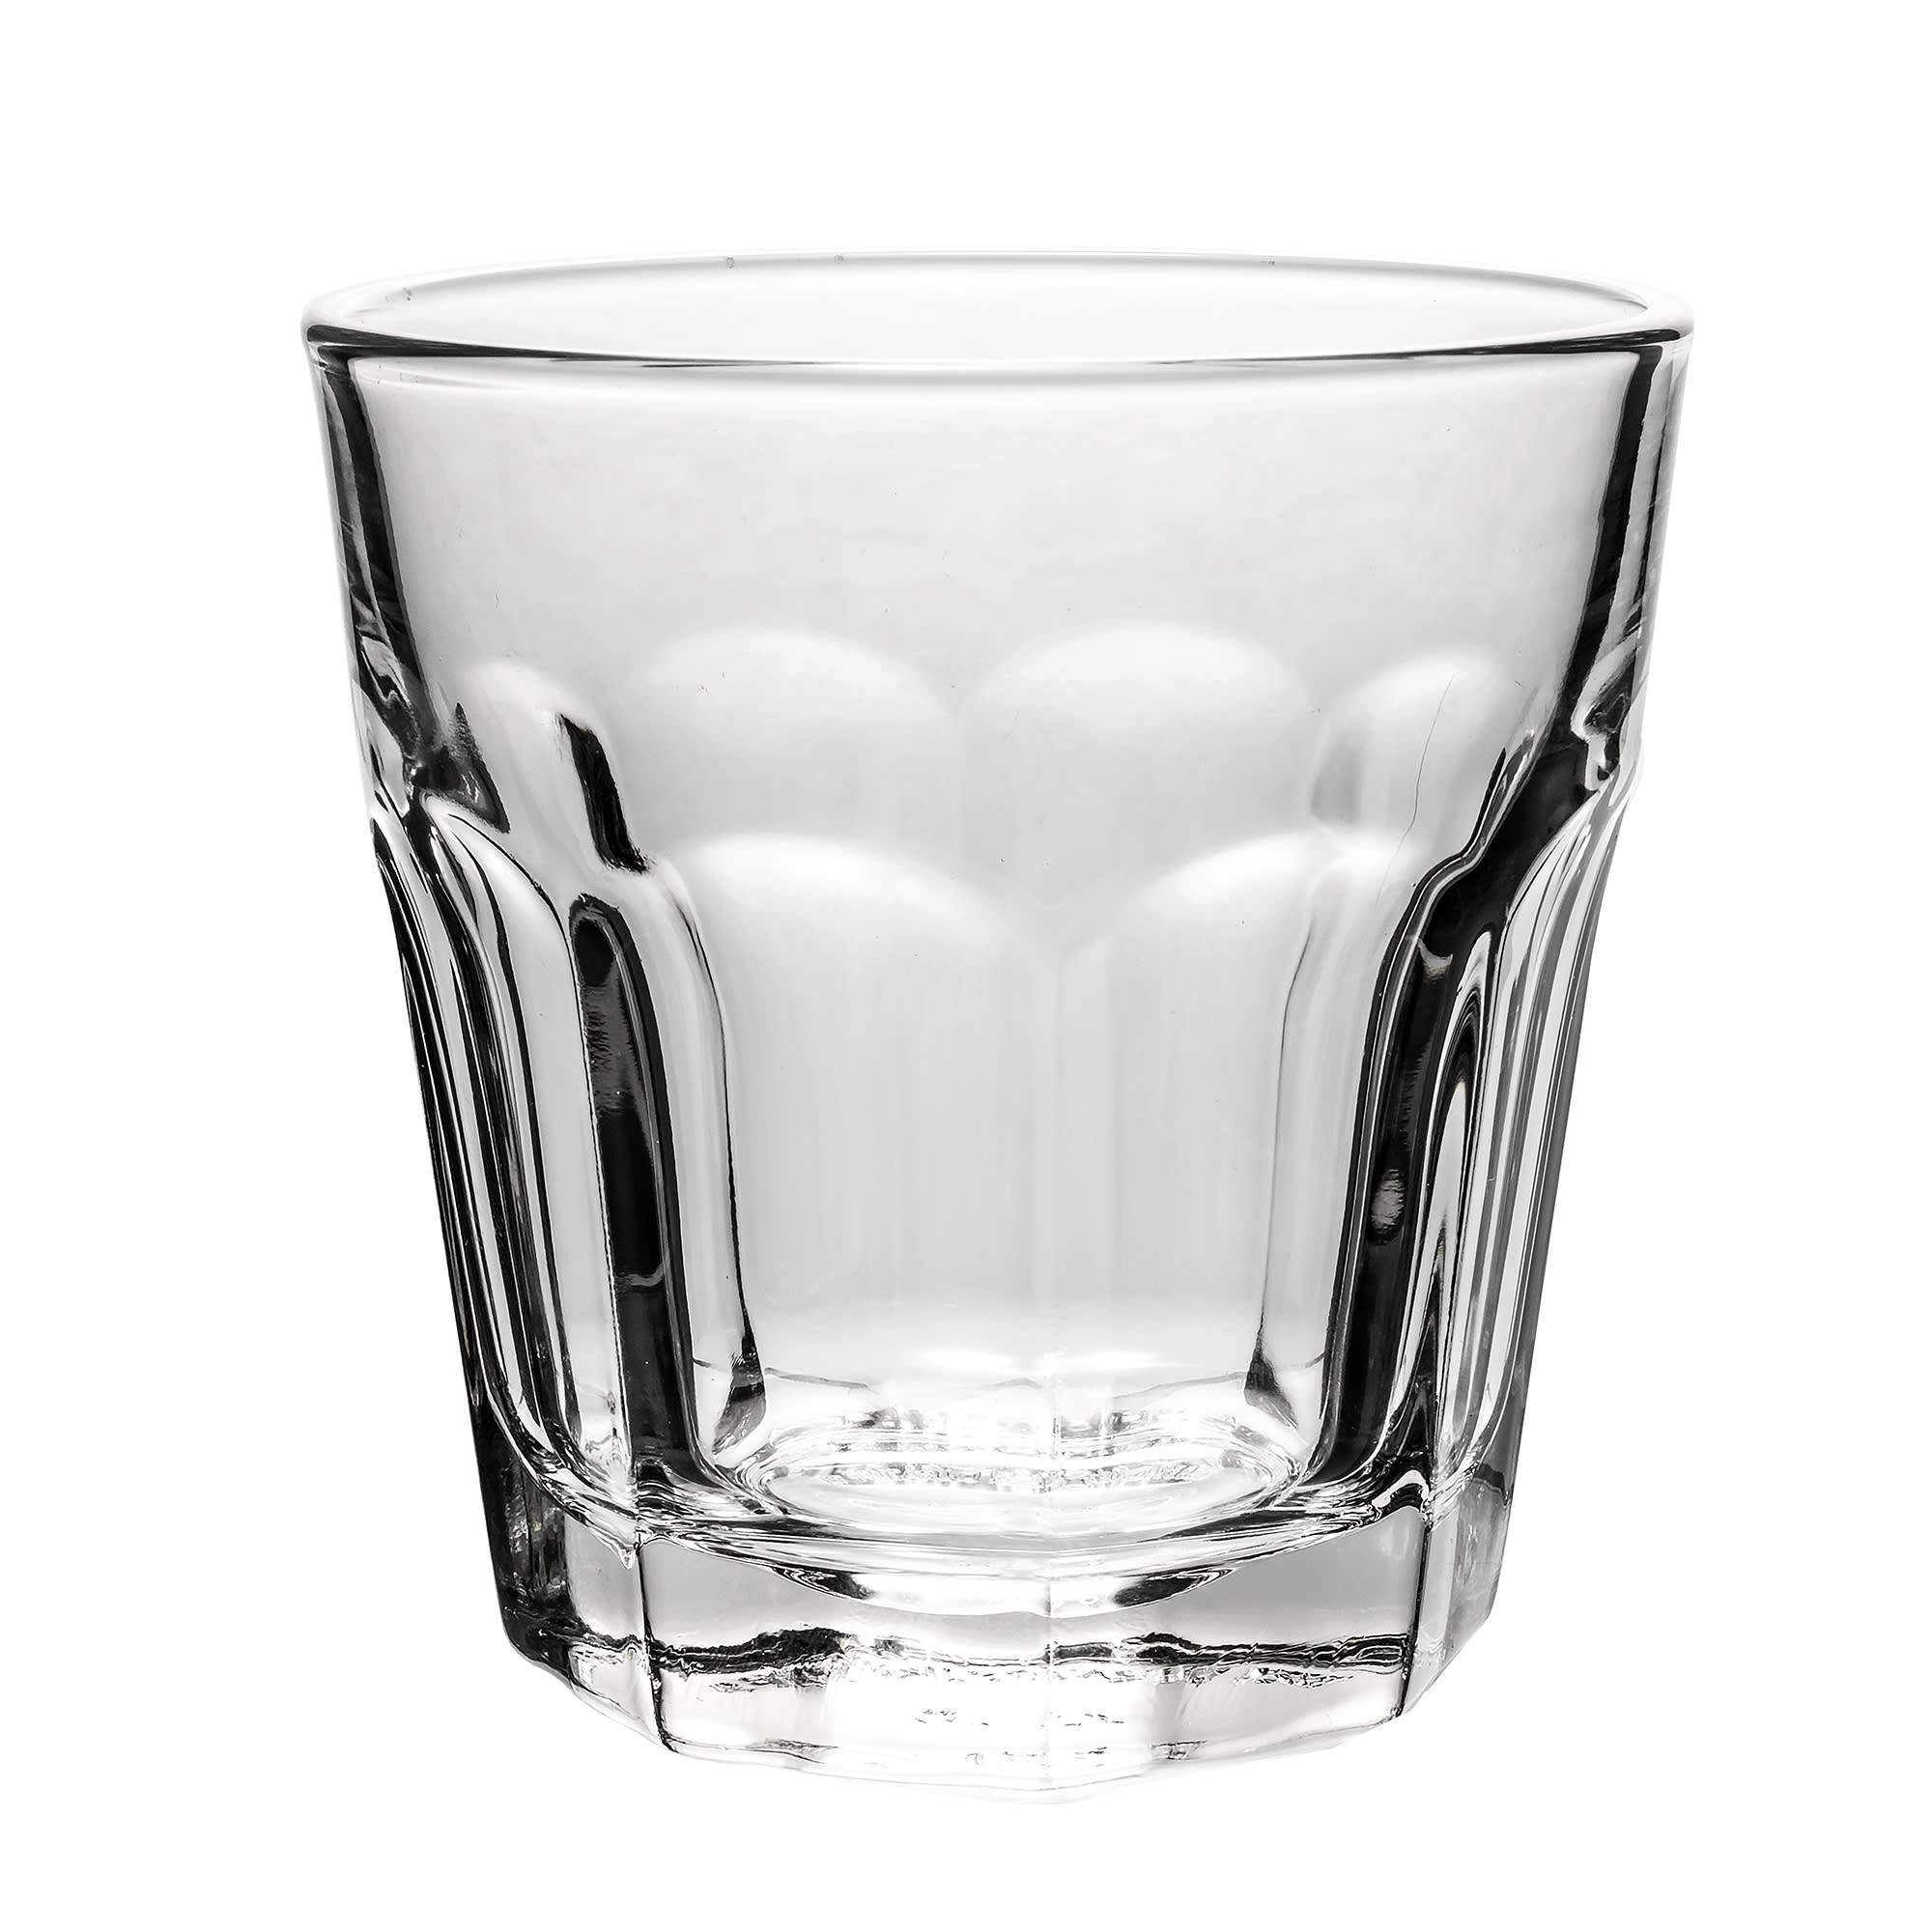 Libbey 15241 7-oz Rocks Glass - Gibraltar